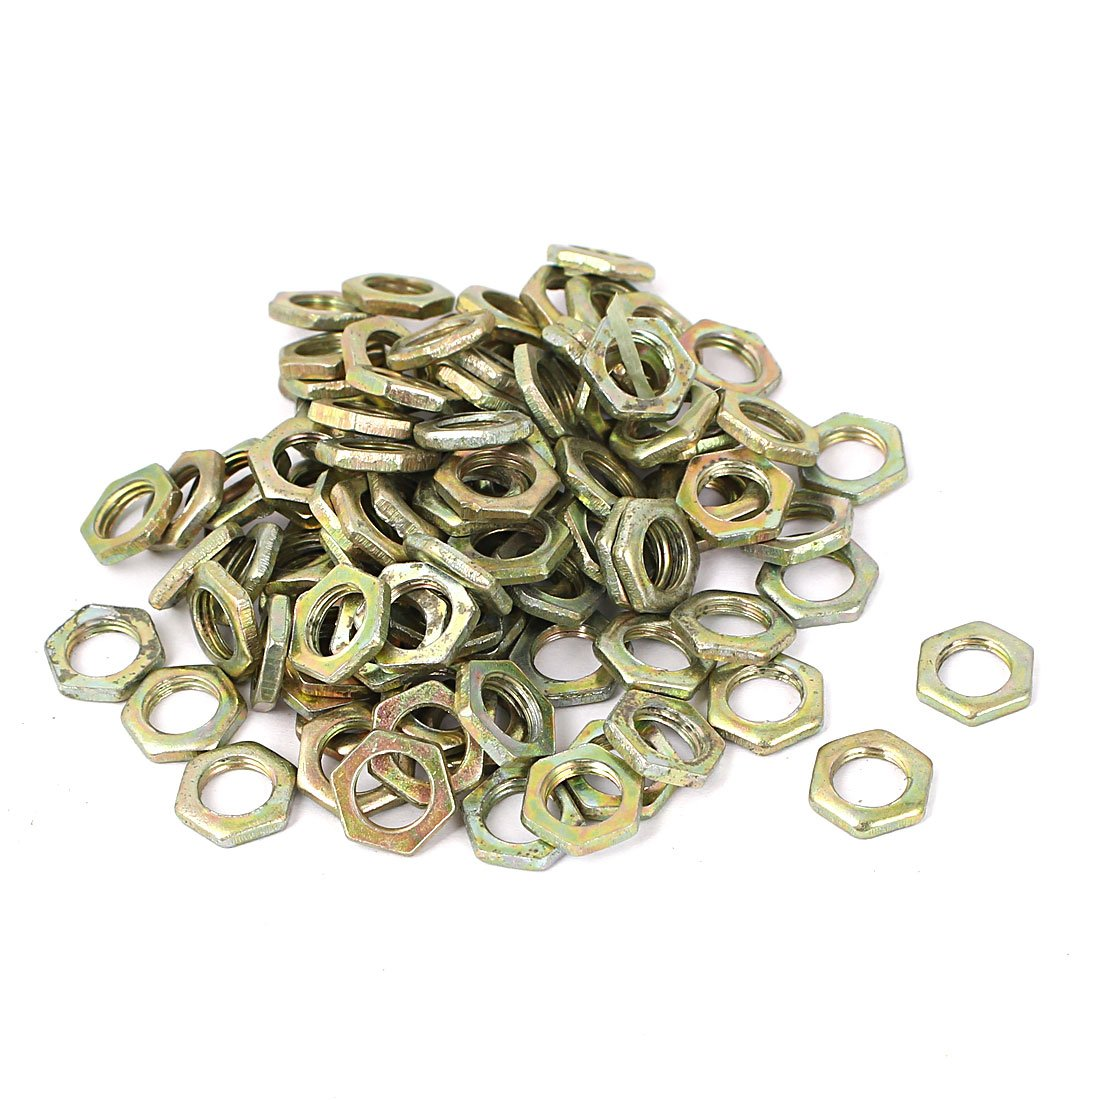 uxcell M7x0.75x2mm Carbon Steel Hex Nuts Fastener 100pcs for Screws Bolts SYNCTEA050980